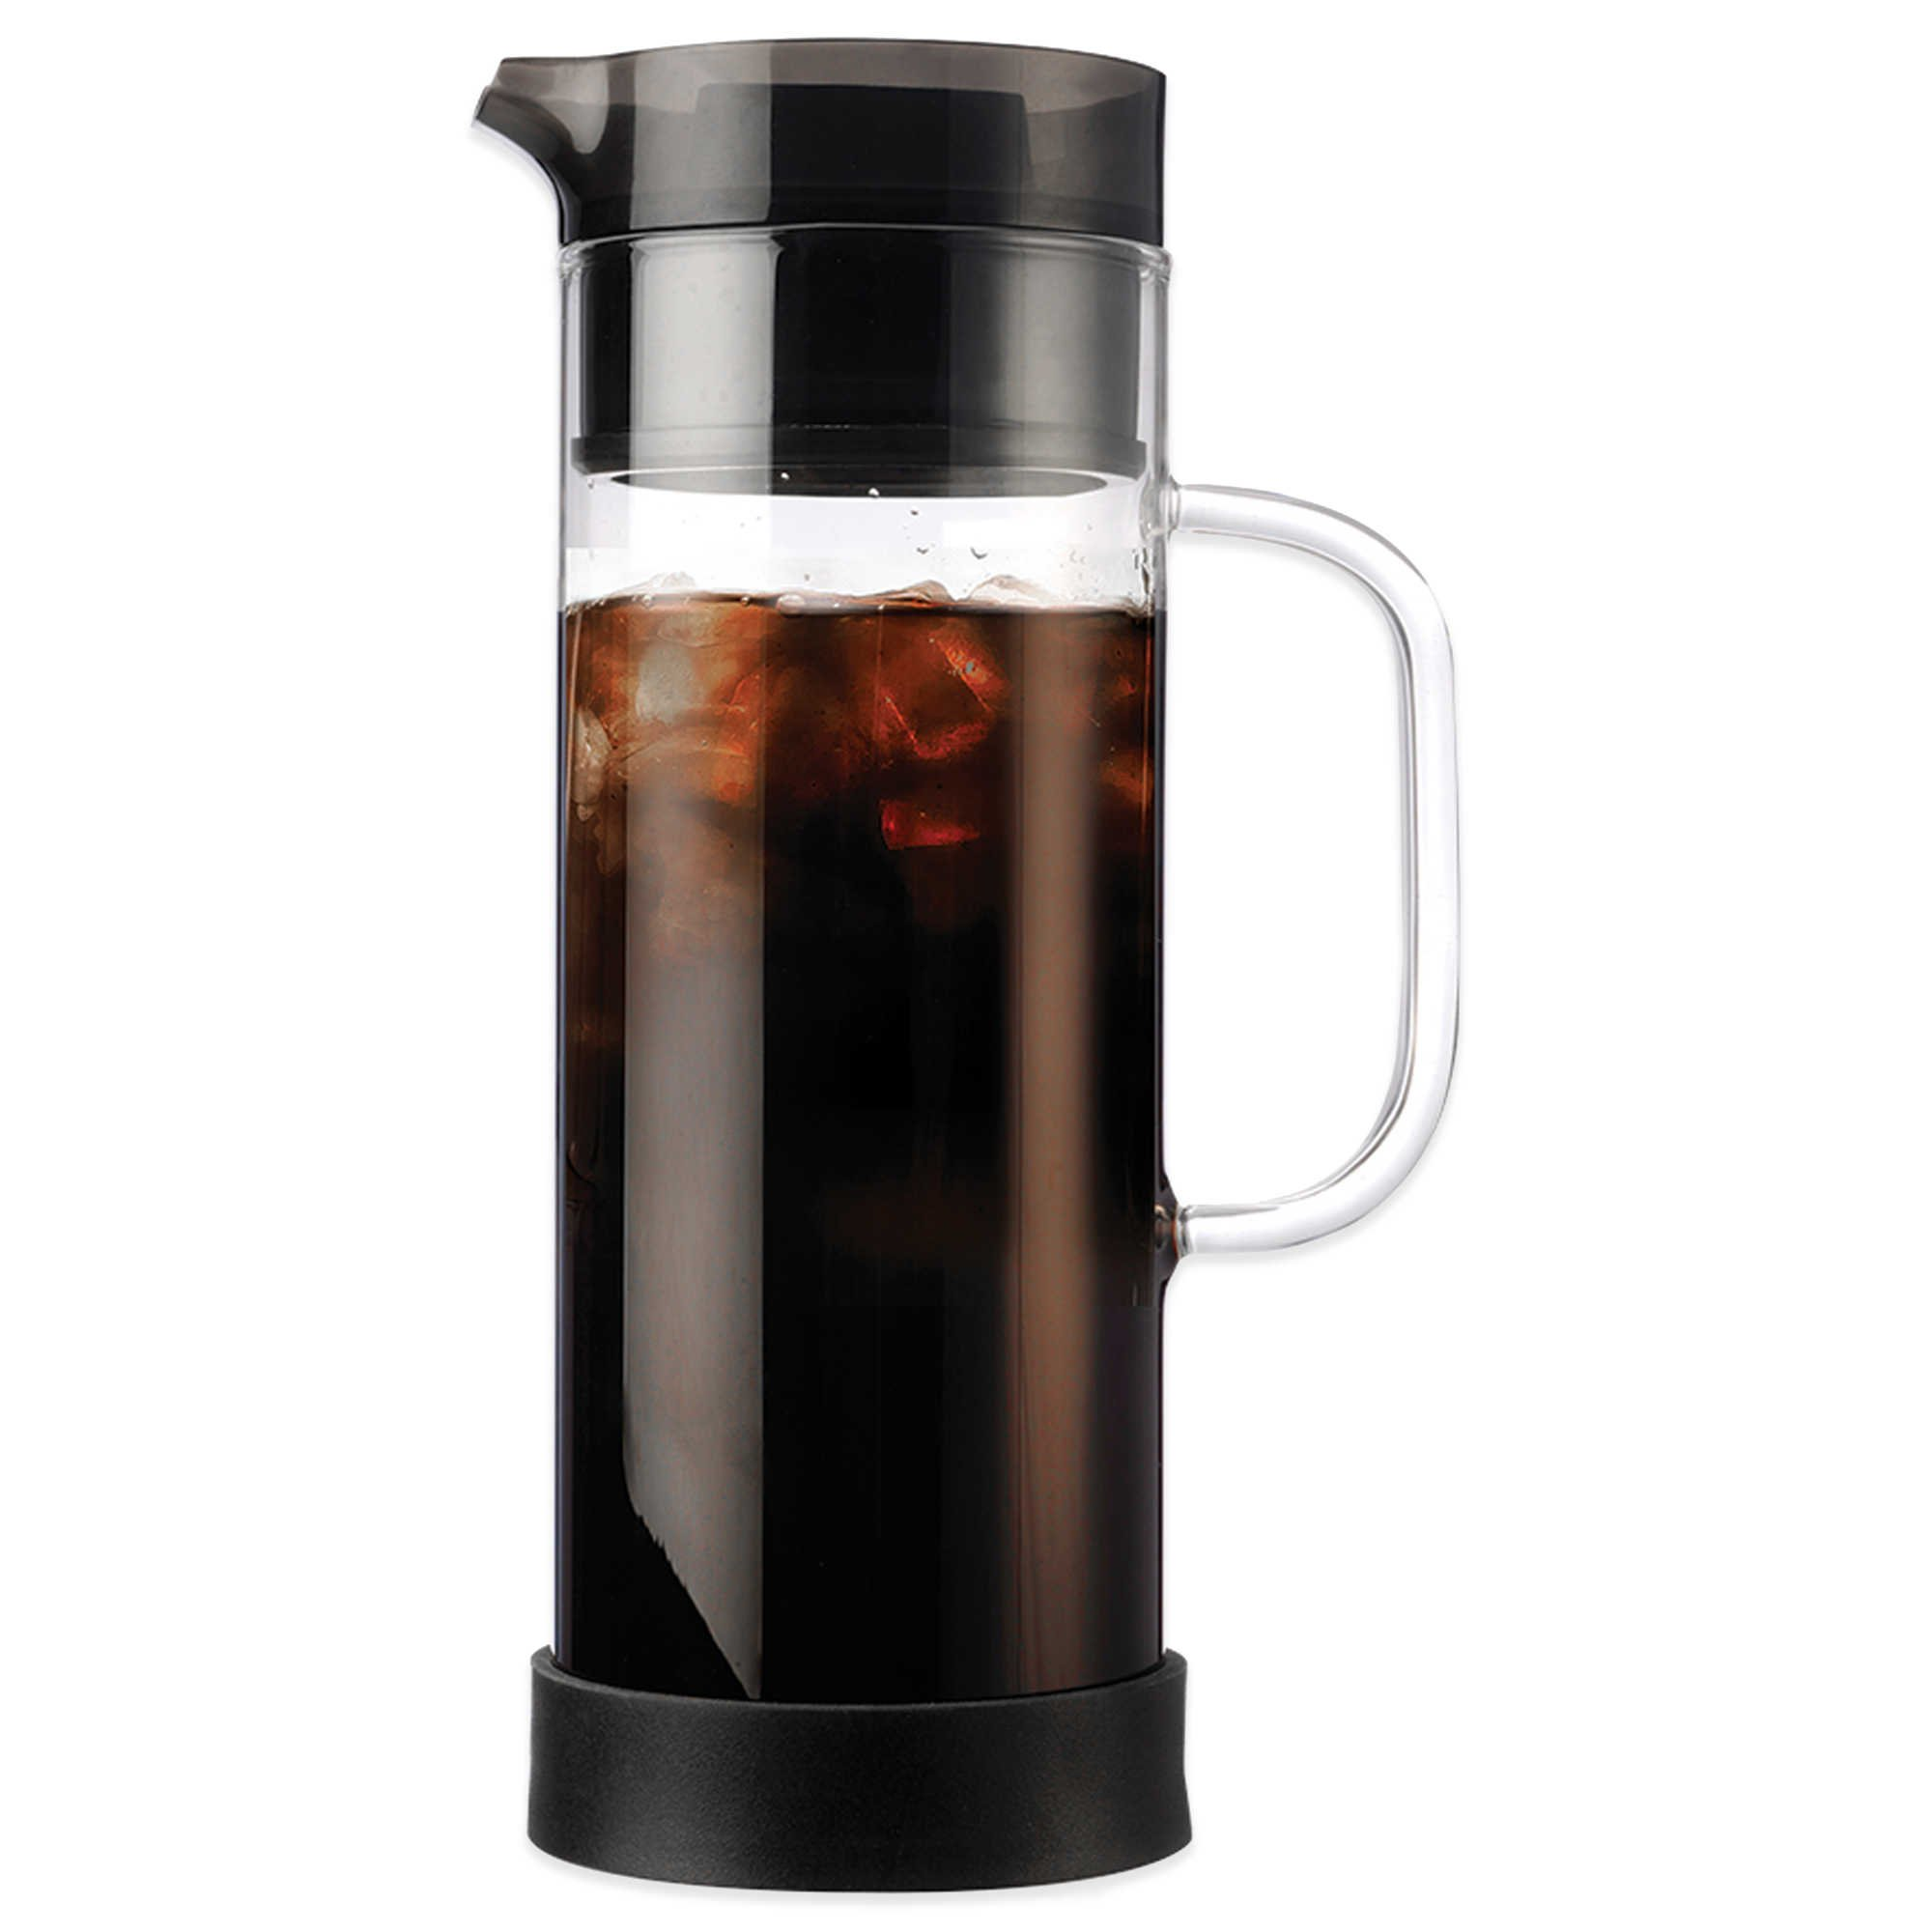 Primula 50 oz. Cold Brew Iced Coffee Maker by HometoDeals